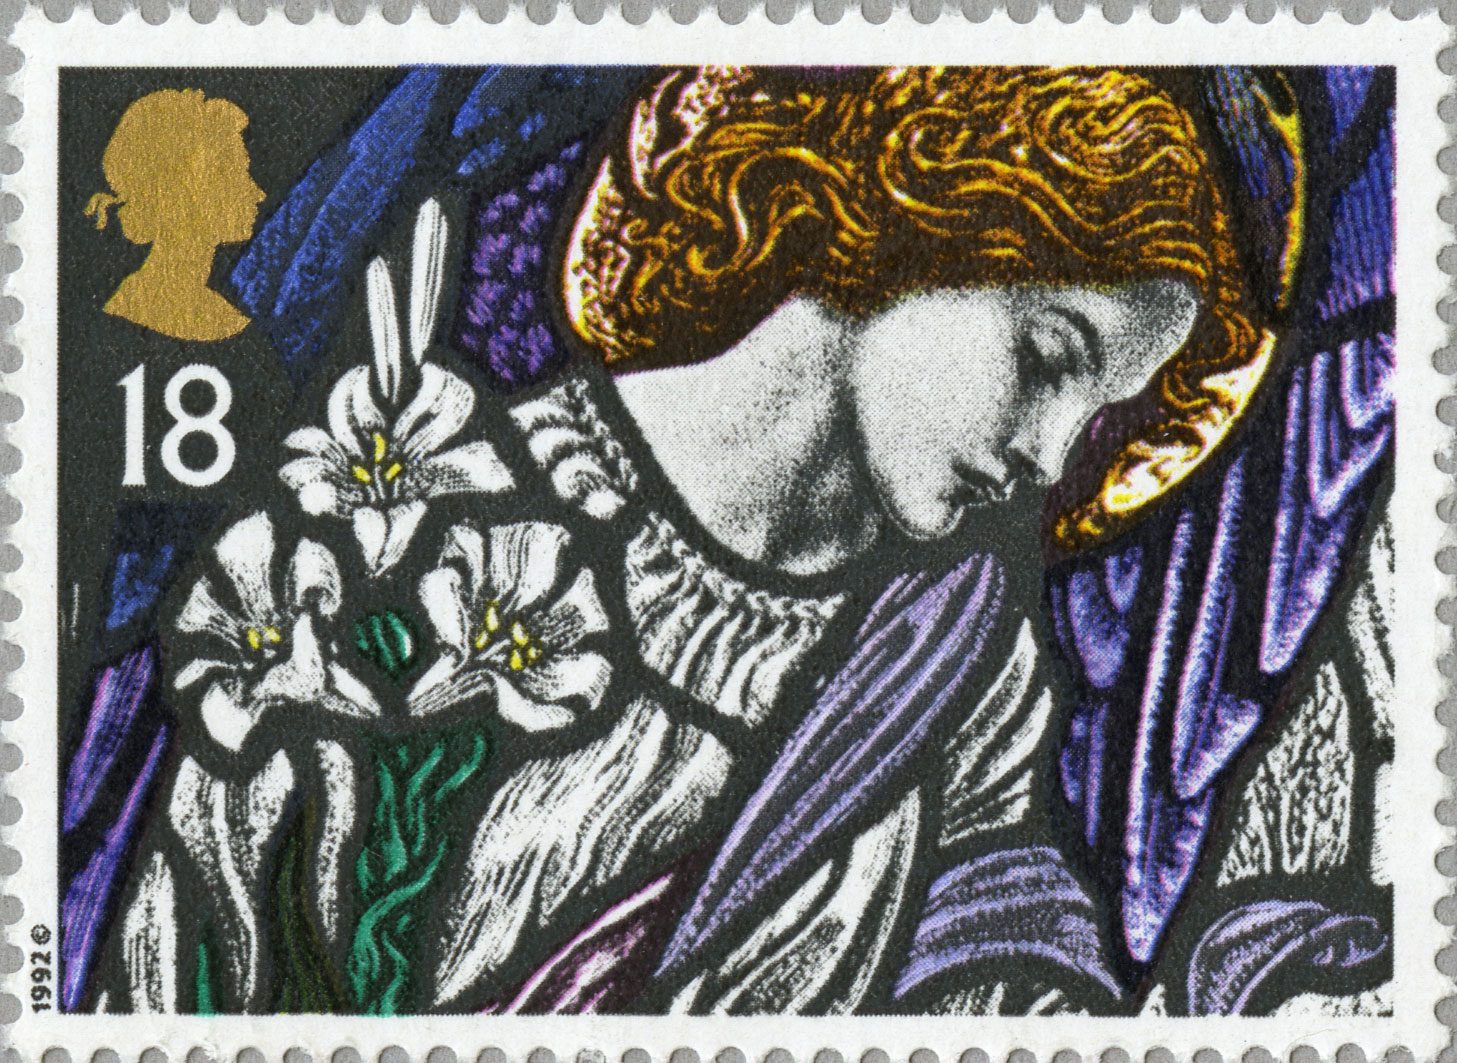 A stamp depicting the figure of Angel Gabriel in stain glass with a bunch of white lilies.